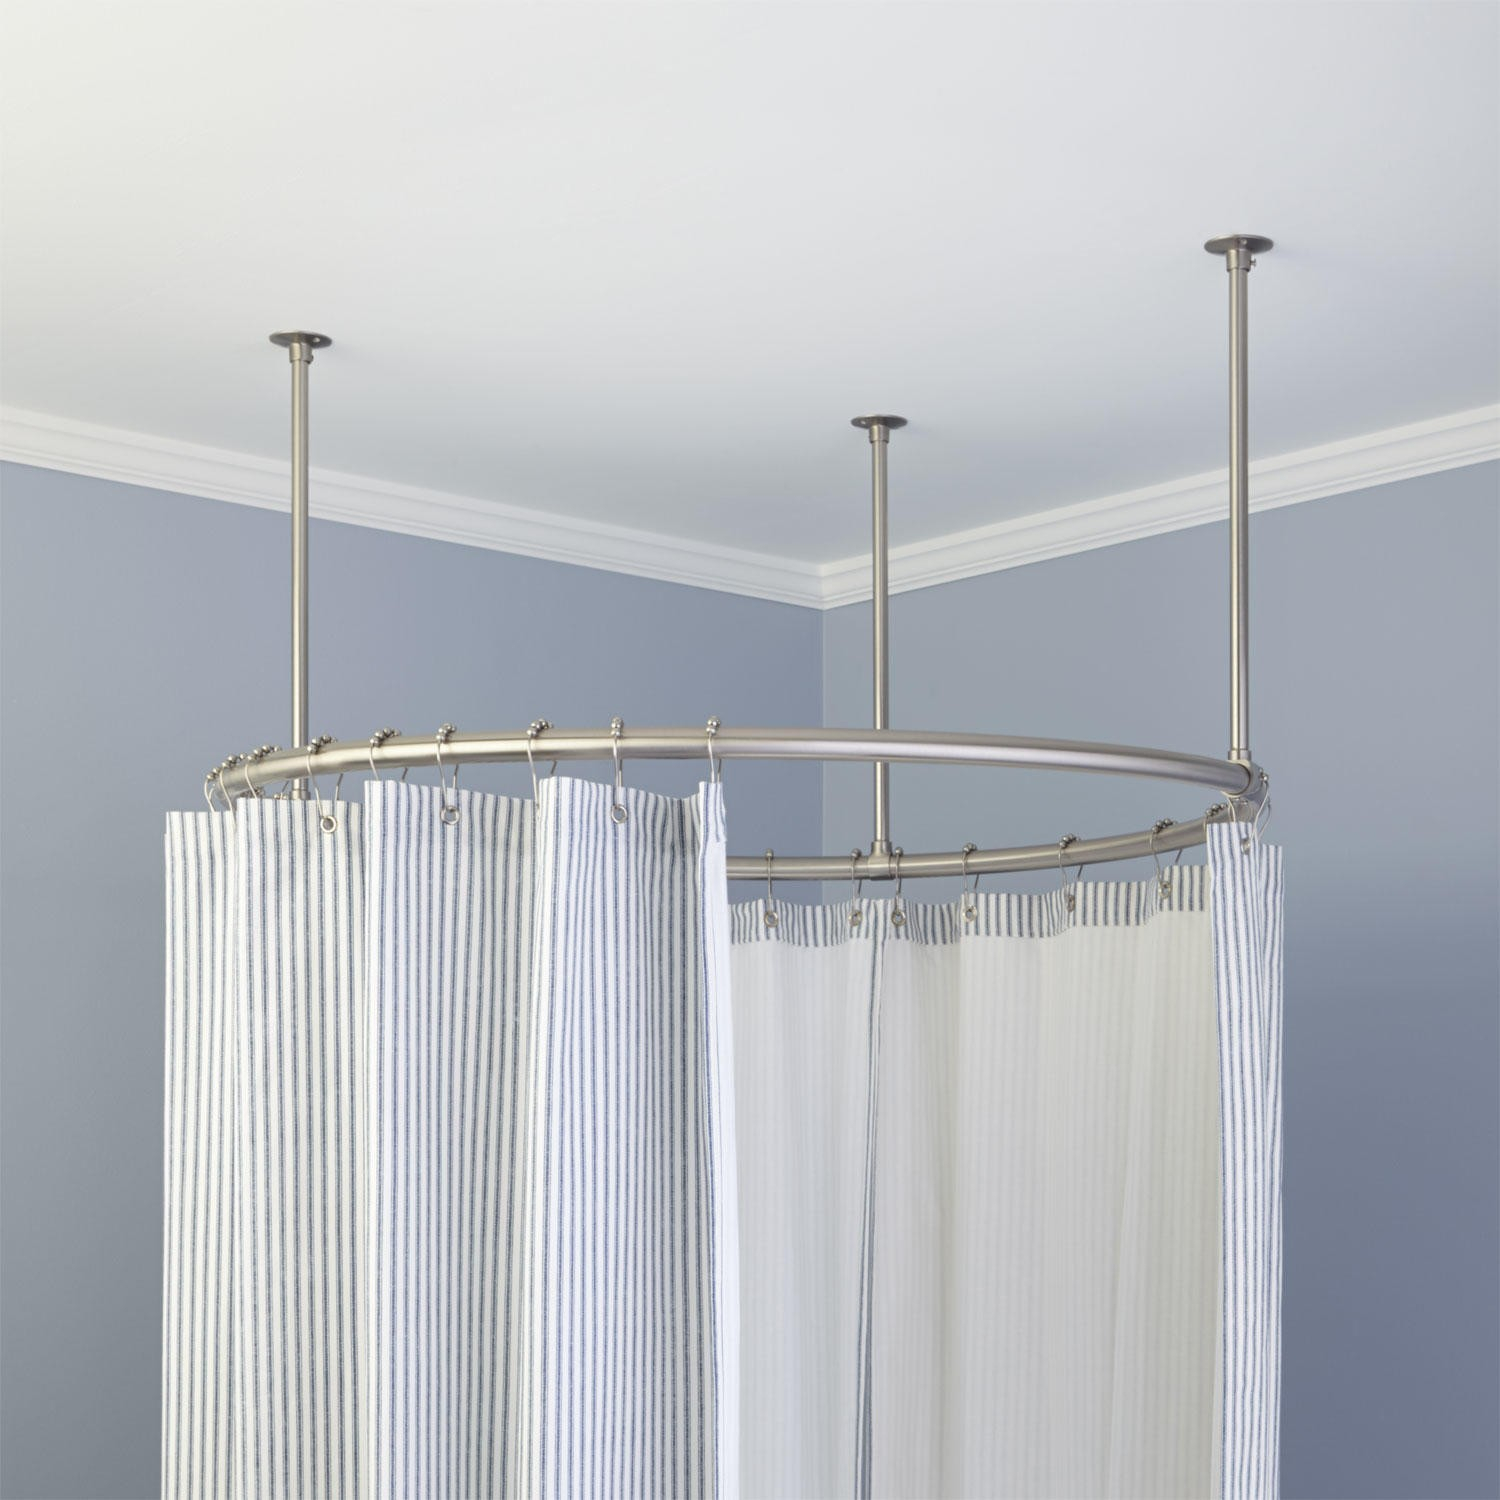 Imposing Design Clawfoot Tub Shower Curtain Rod Extremely Creative inside proportions 1500 X 1500